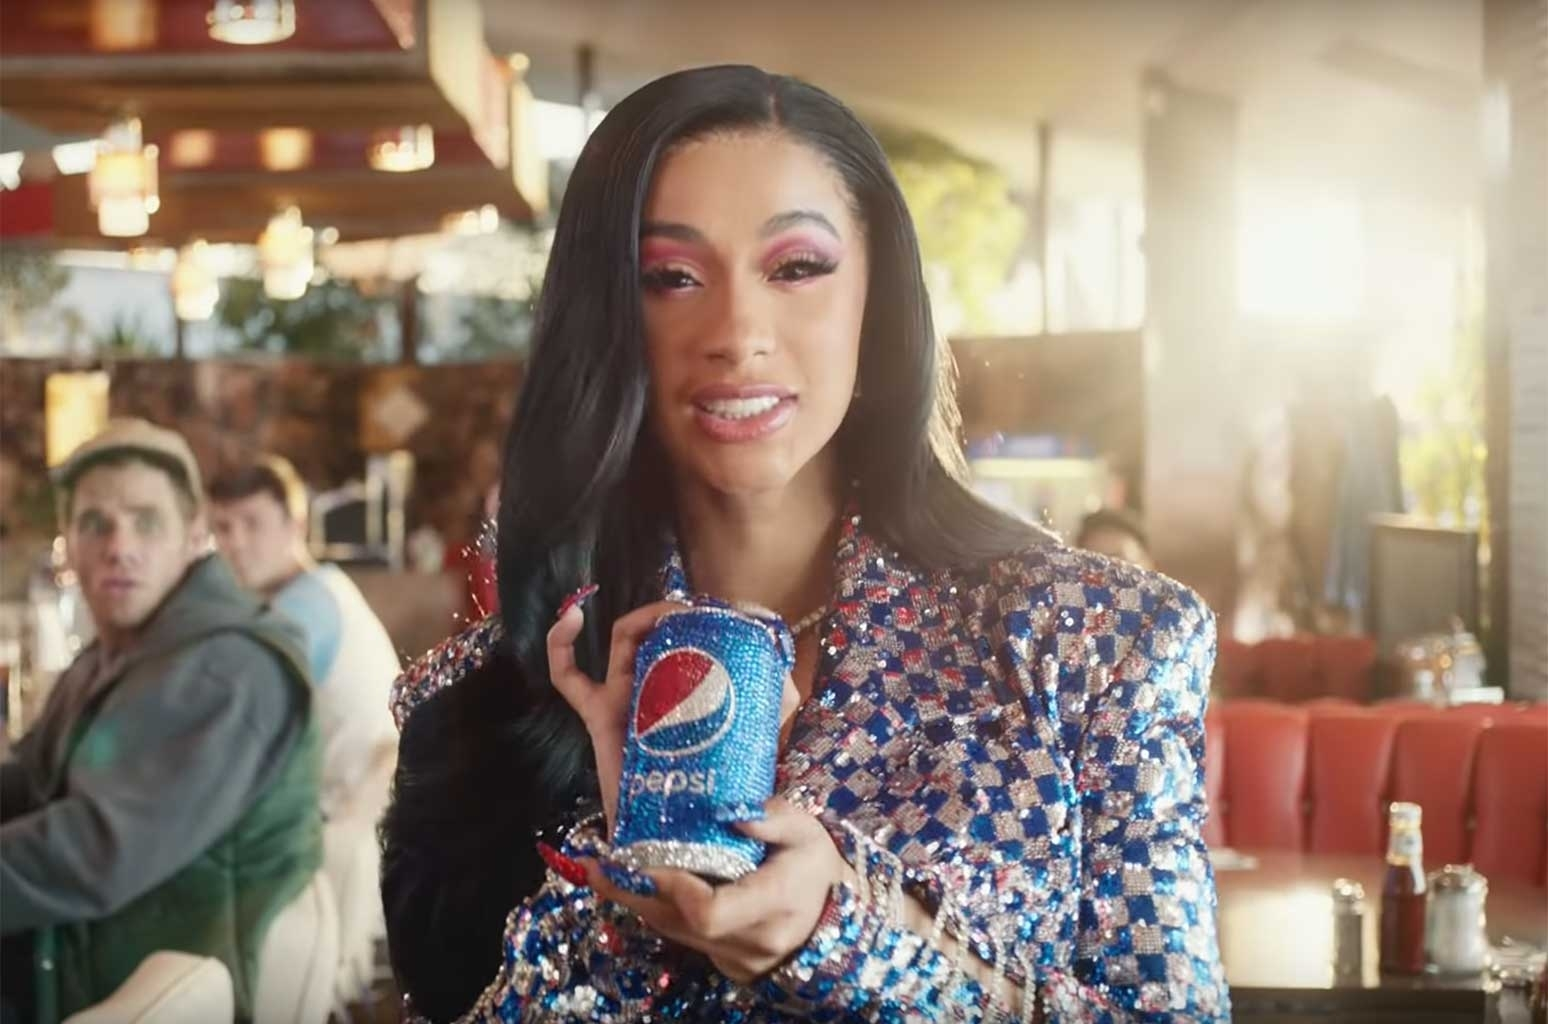 Cardi B, Lil Jon & Steve Carrell In Pepsi Super Bowl intended for Cardi B Super Bowl 2019